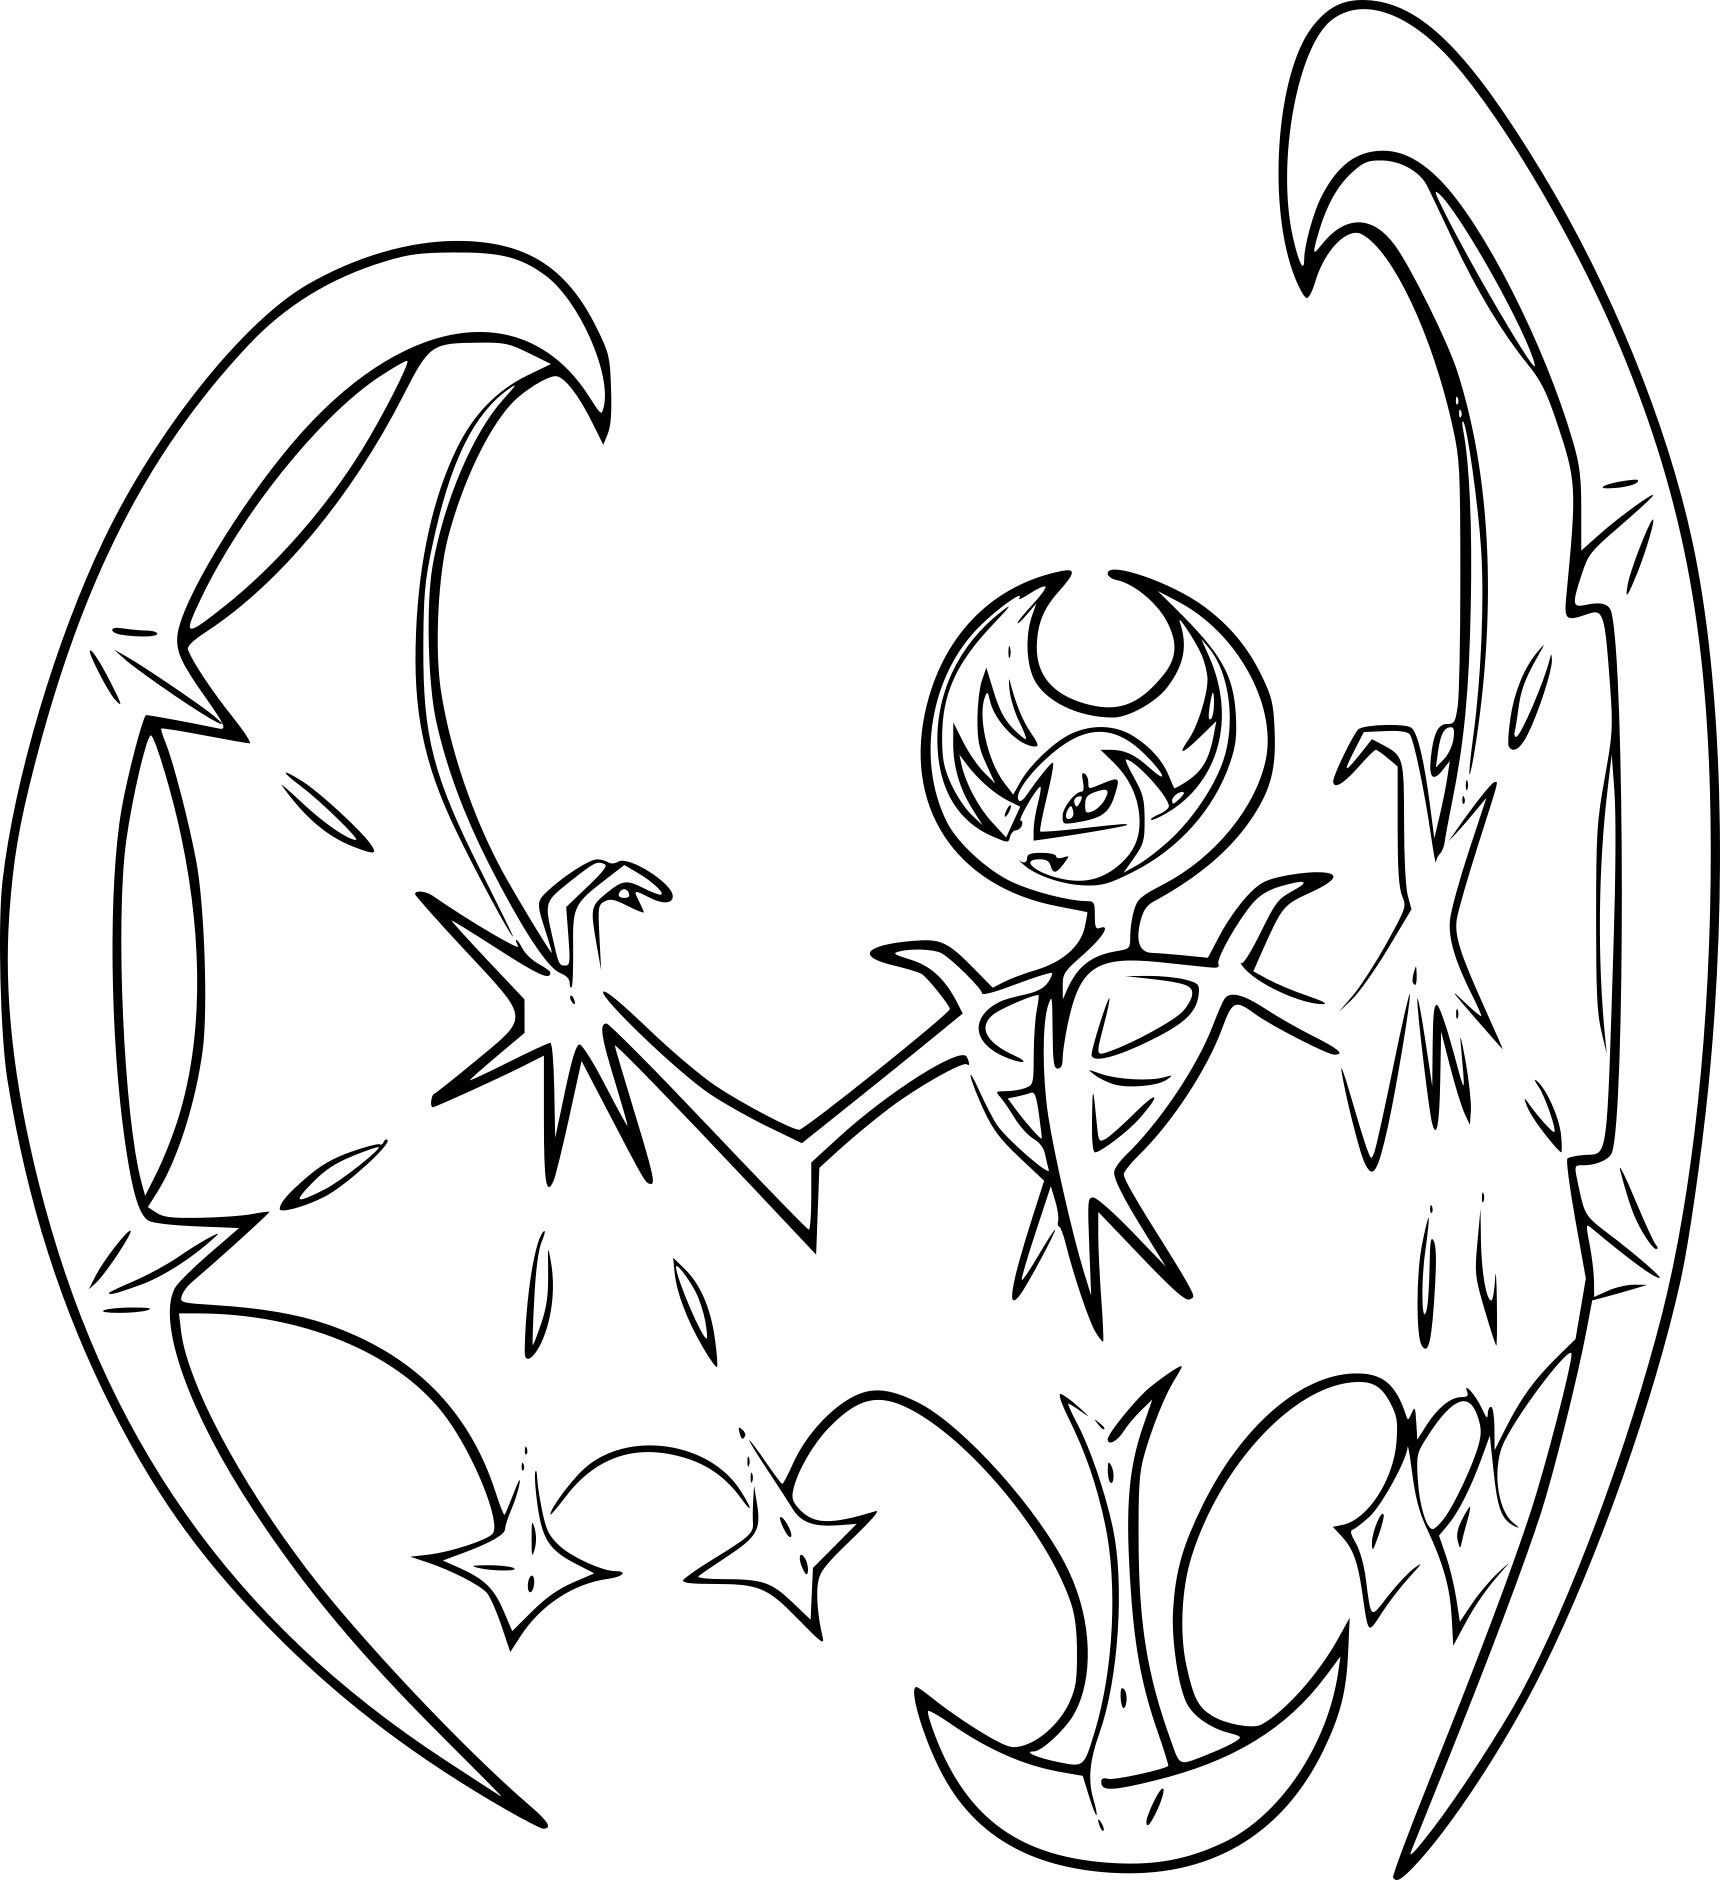 Pokemon Lunala Coloring Pages Pokemon Coloring Pages Pokemon